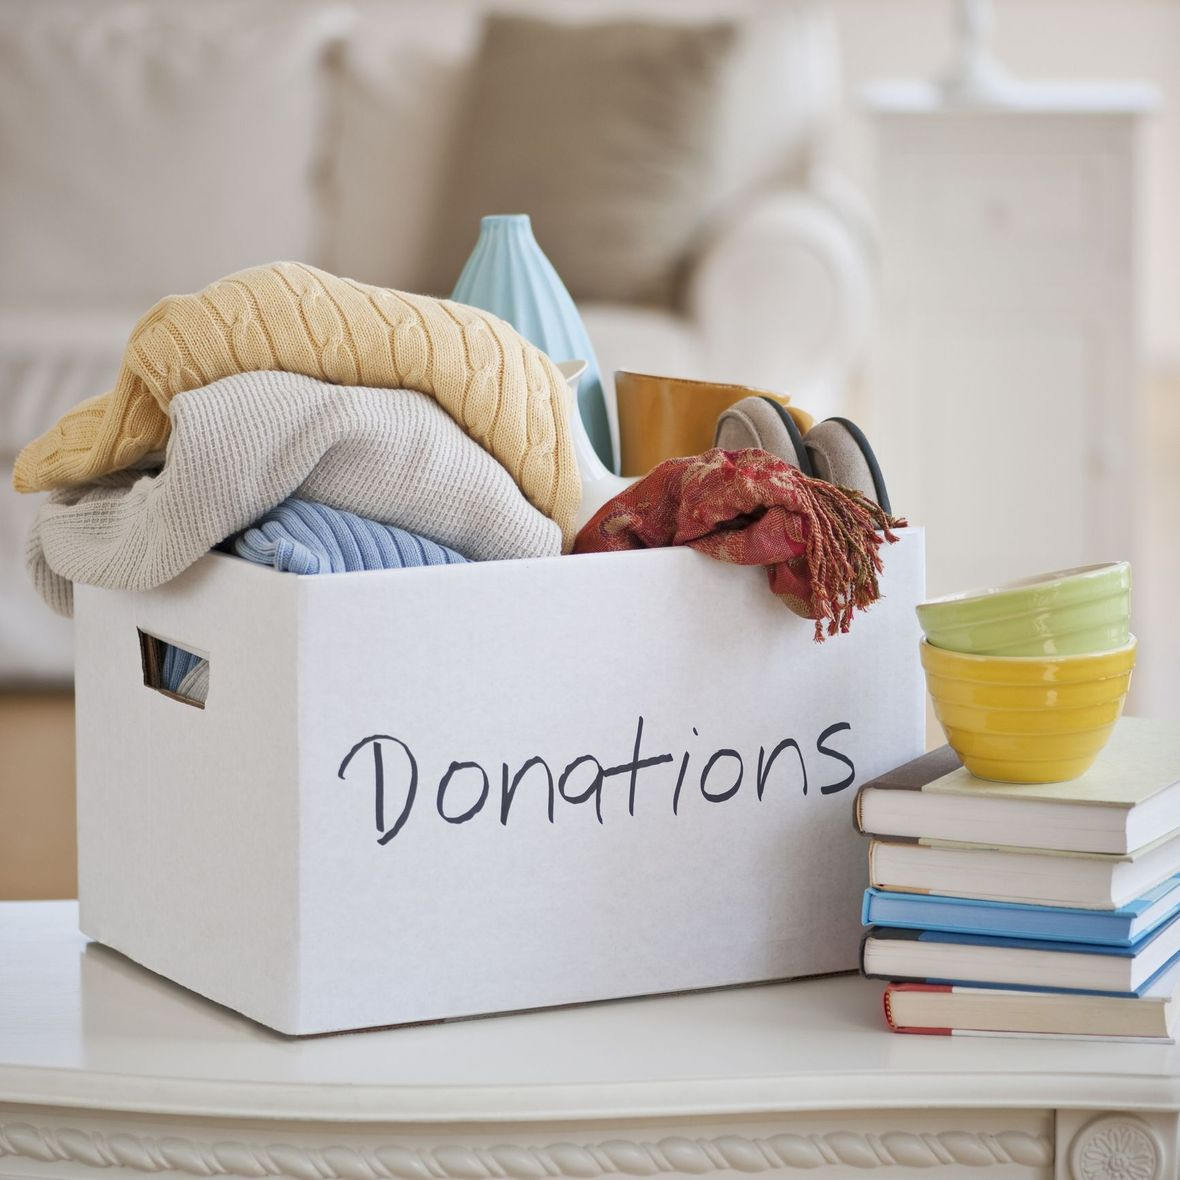 donations-box-royalty-free-image-1585255302